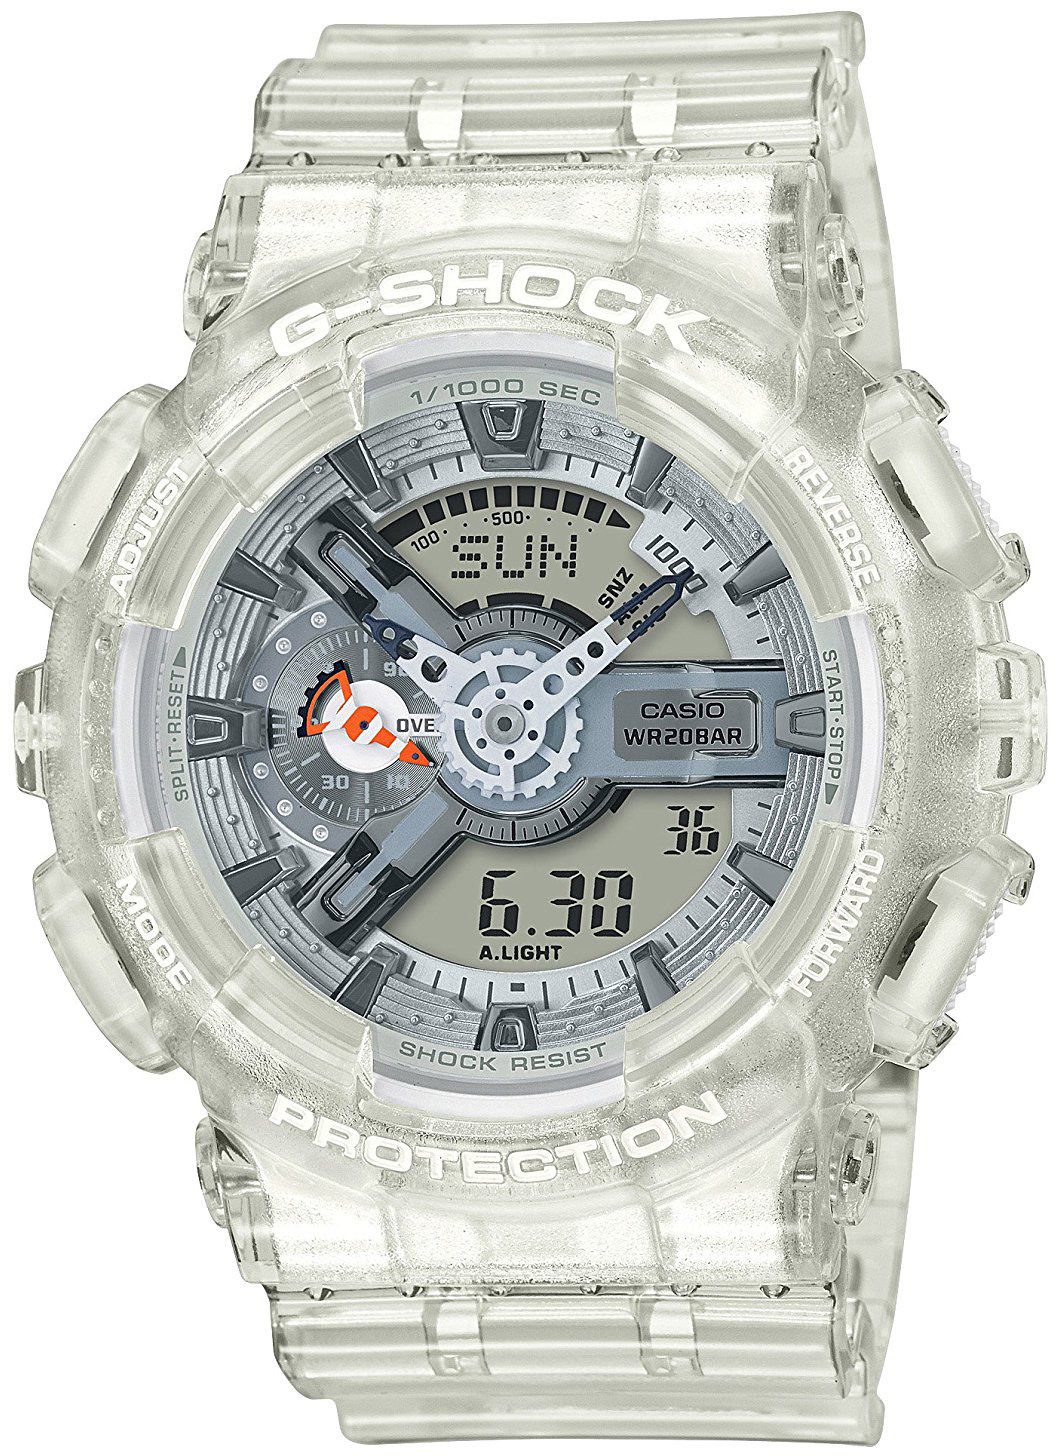 Мужские часы Casio G-Shock GA-110CR-7AER